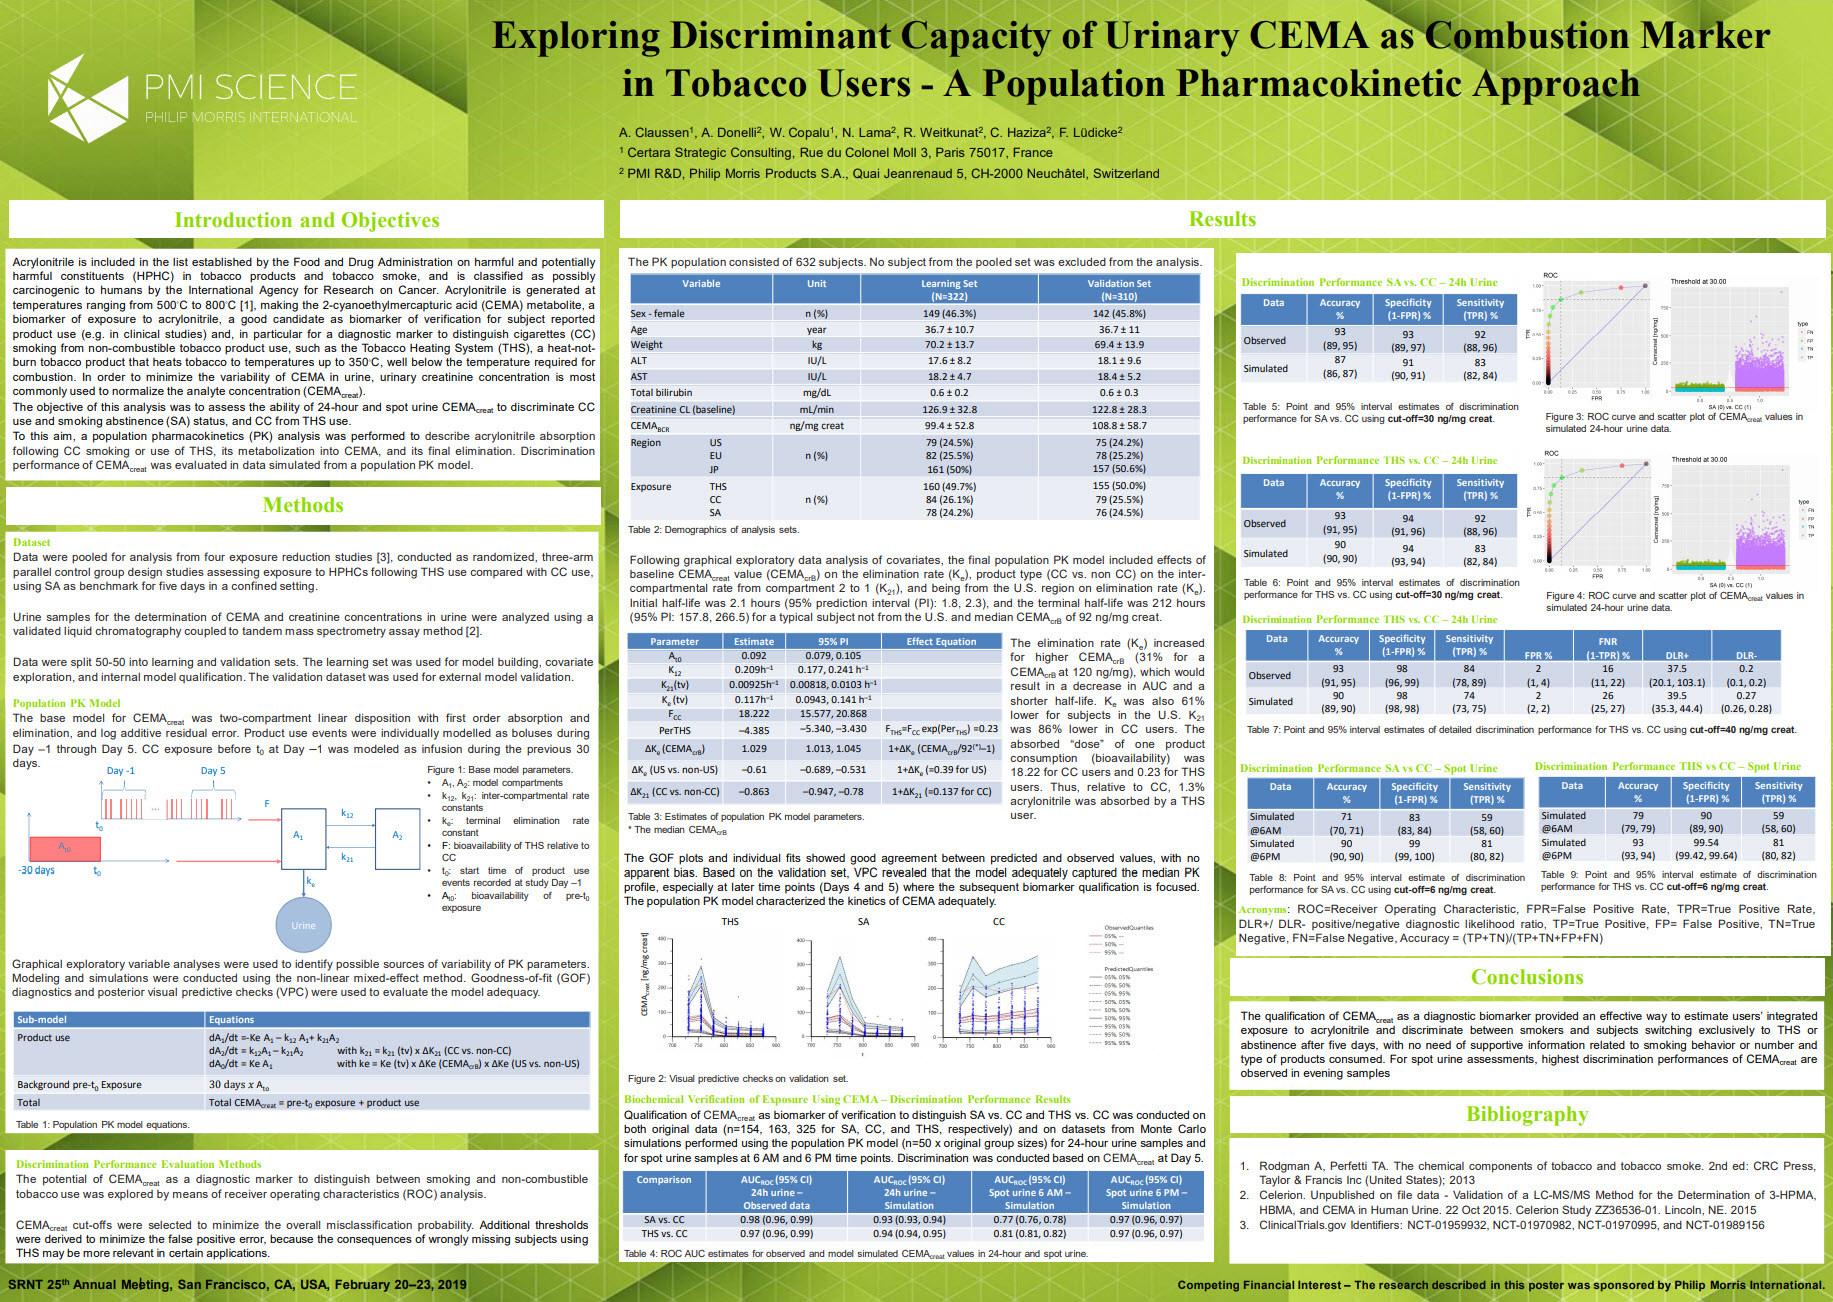 N. Lama_Exploring discriminant capacitiy for urinary CEMA as combustion marker